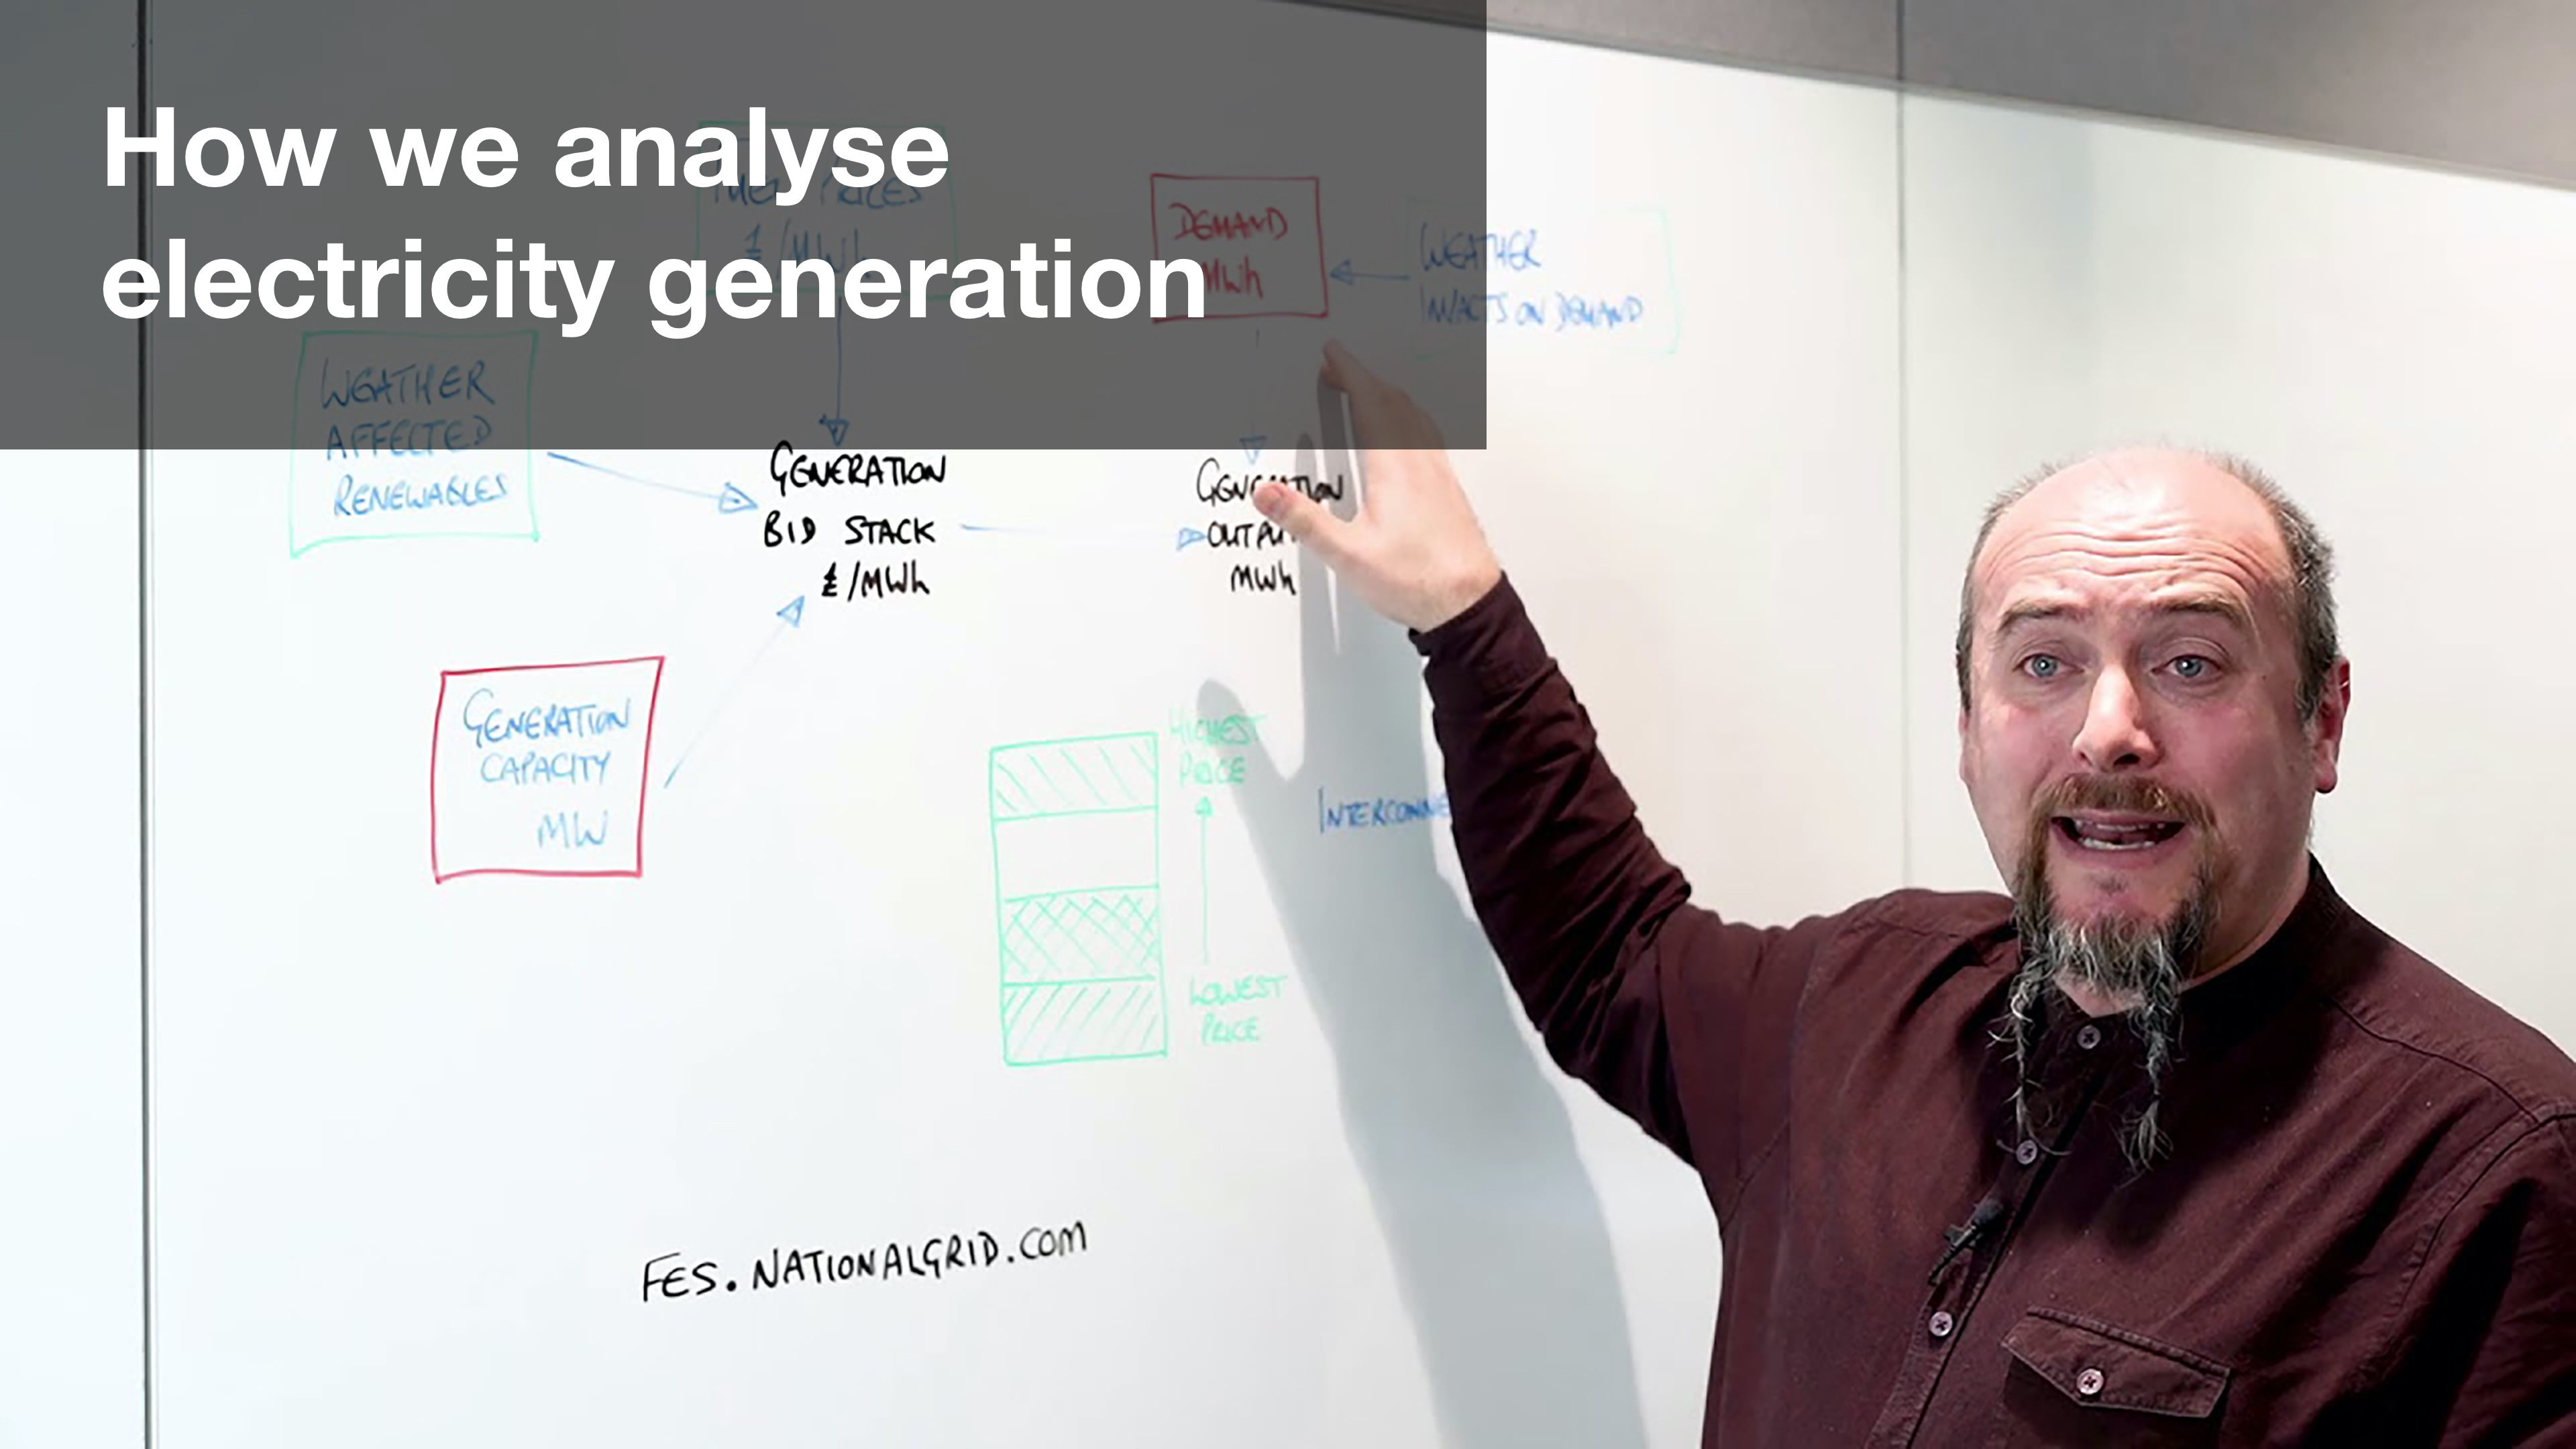 fes_how_we_analyse_electricity_generation